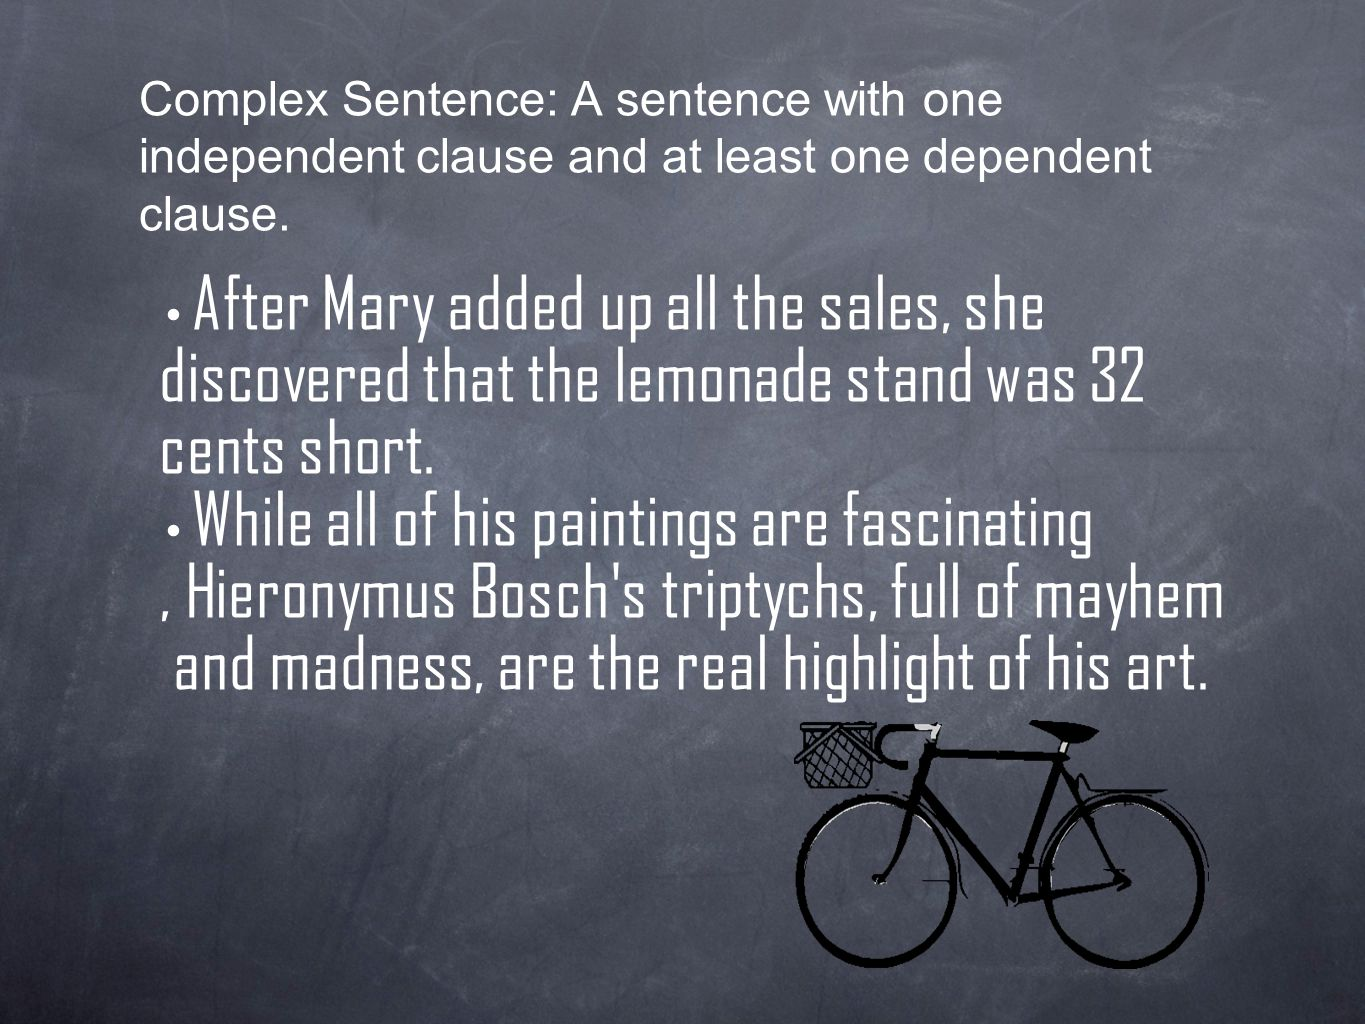 Complex Sentence: A sentence with one independent clause and at least one dependent clause.